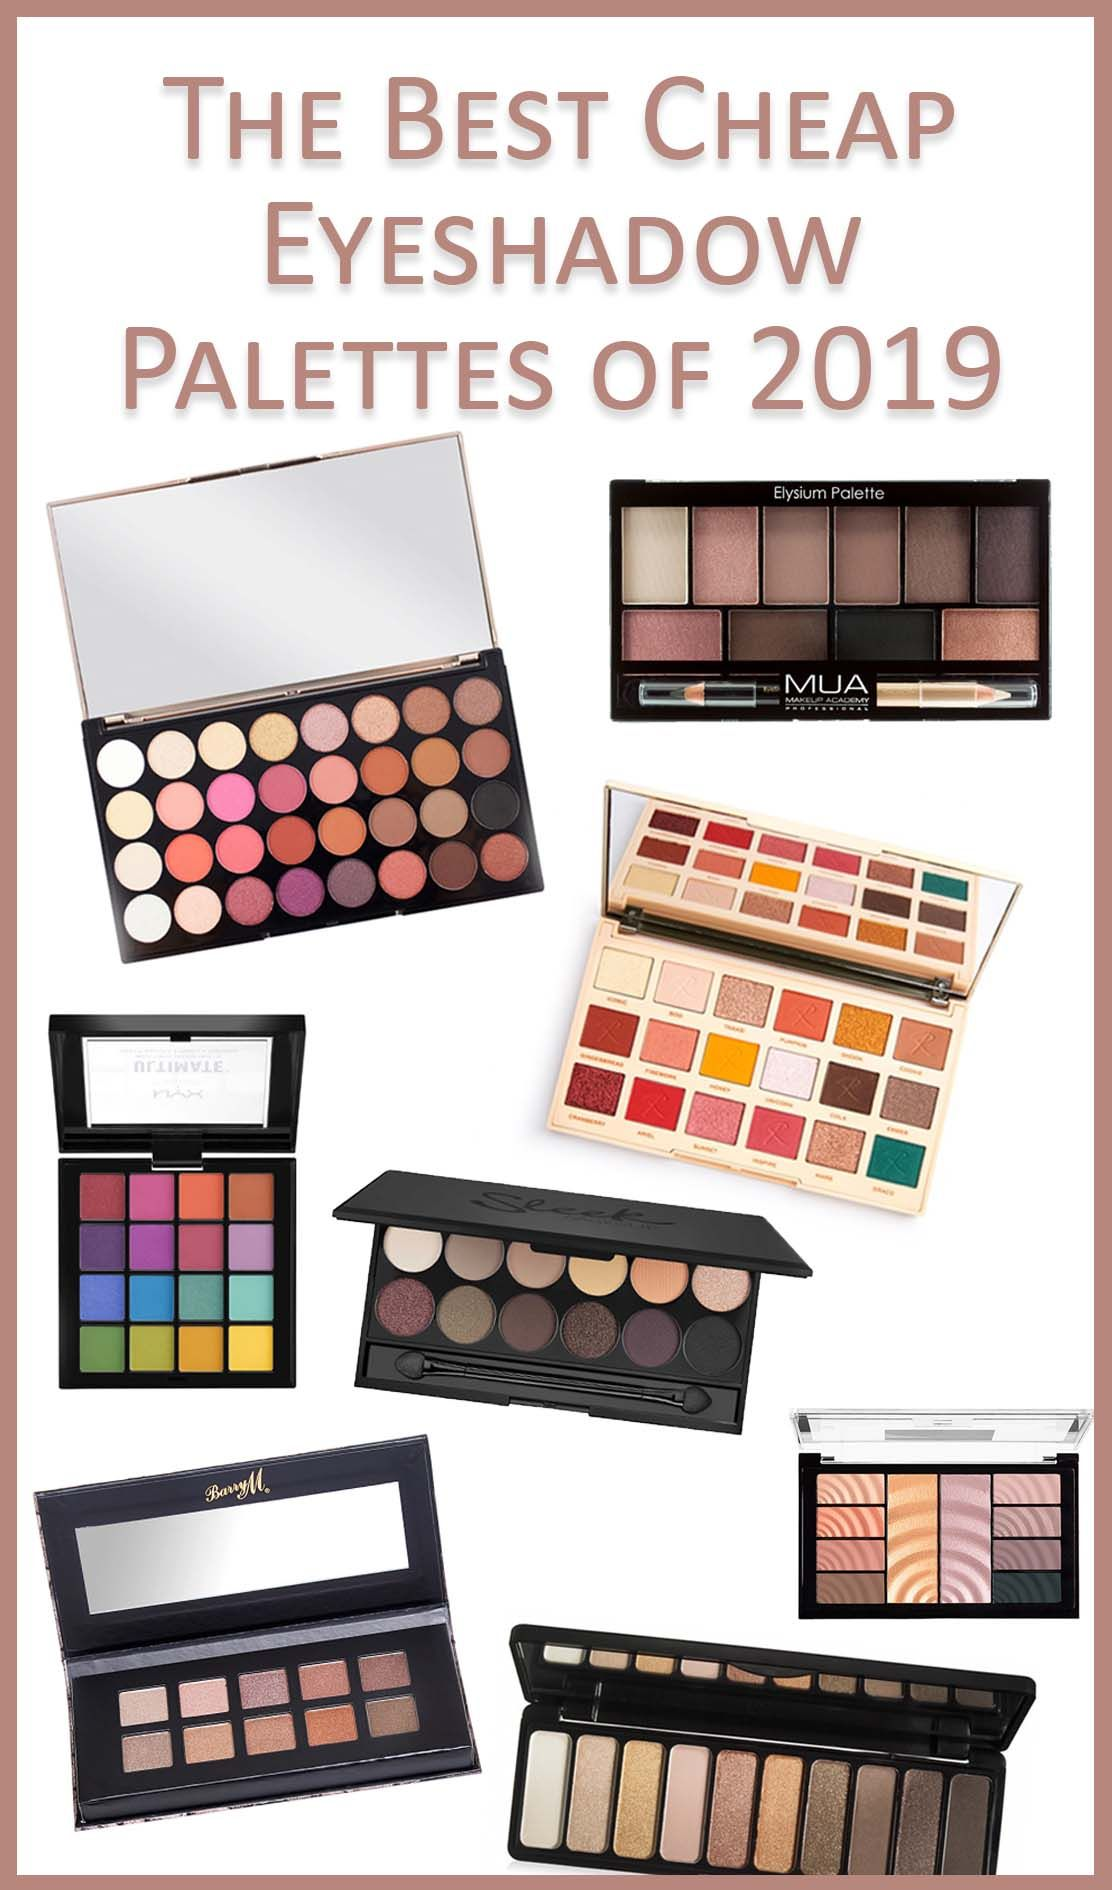 The Best Cheap Eyeshadow Palette of 2019 is online now